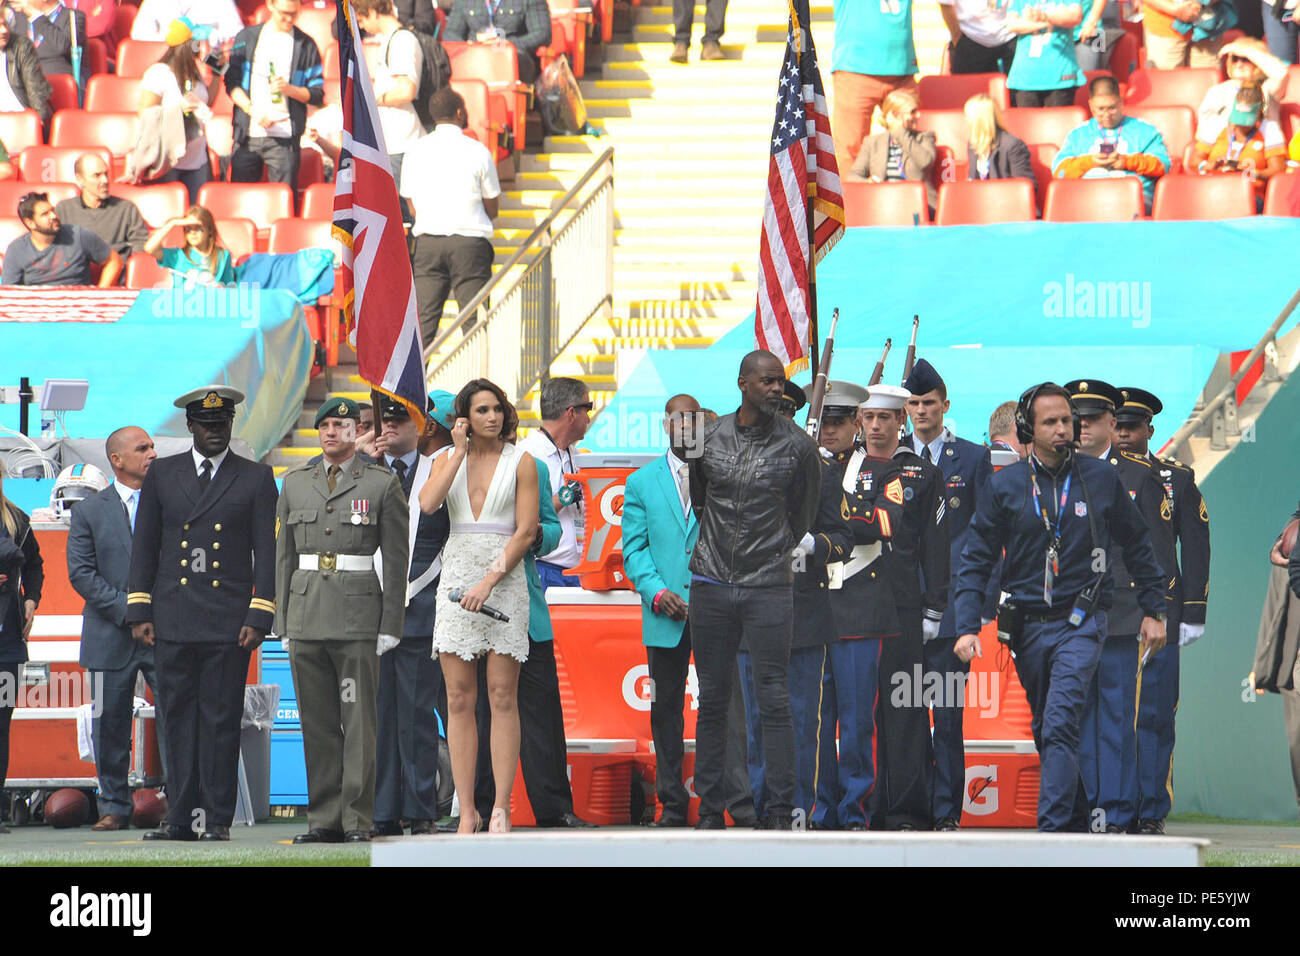 British opera singer Laura Wright, and American rhythm and blues singer Brian McKnight prepare to sing their countries' national anthems before the start of the International Series, Miami Dolphins versus New York Jets NFL game at Wembly Stadium, London October 4, 2015. Military personnel from the United Kingdom and the United States presented the national flags for the performance of the anthems during the NFL games in London. (U.S. Air Force photo by Staff Sgt. Ashley Hawkins/Released) - Stock Image